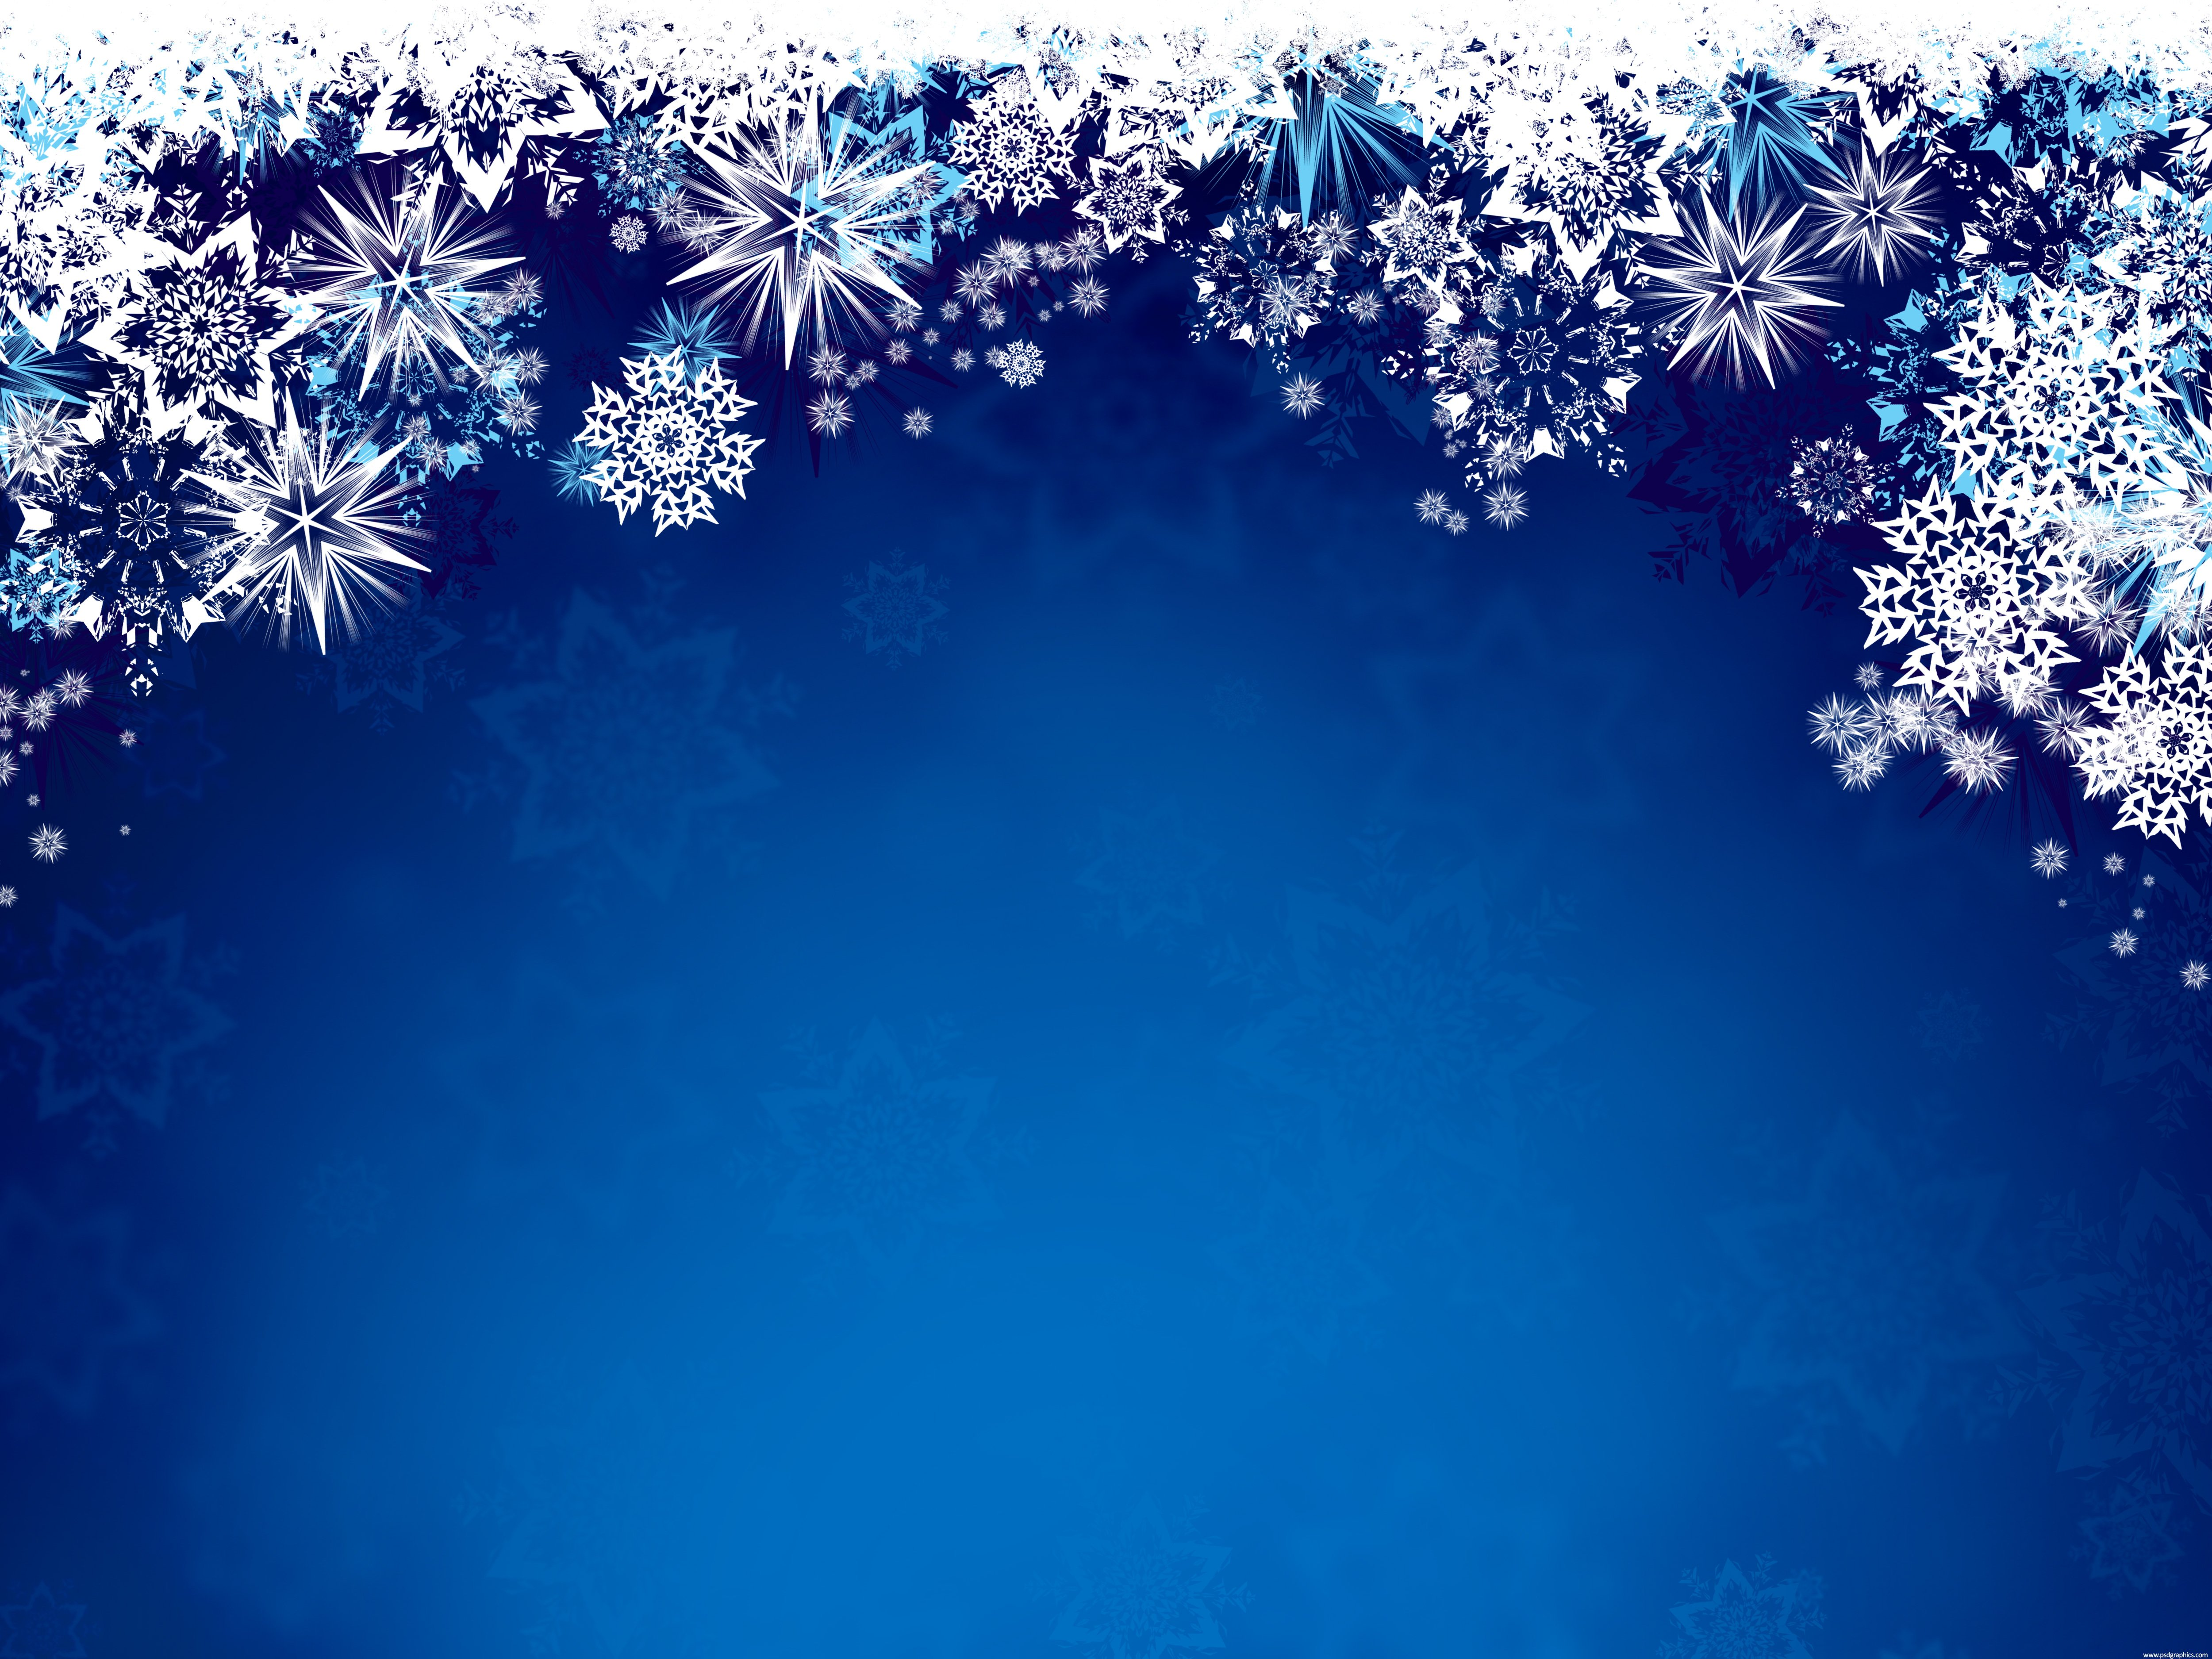 Hd magic winter wallpaper download free - Magic Winter Snowflakes Grungy Winter Design White Snow Background Set